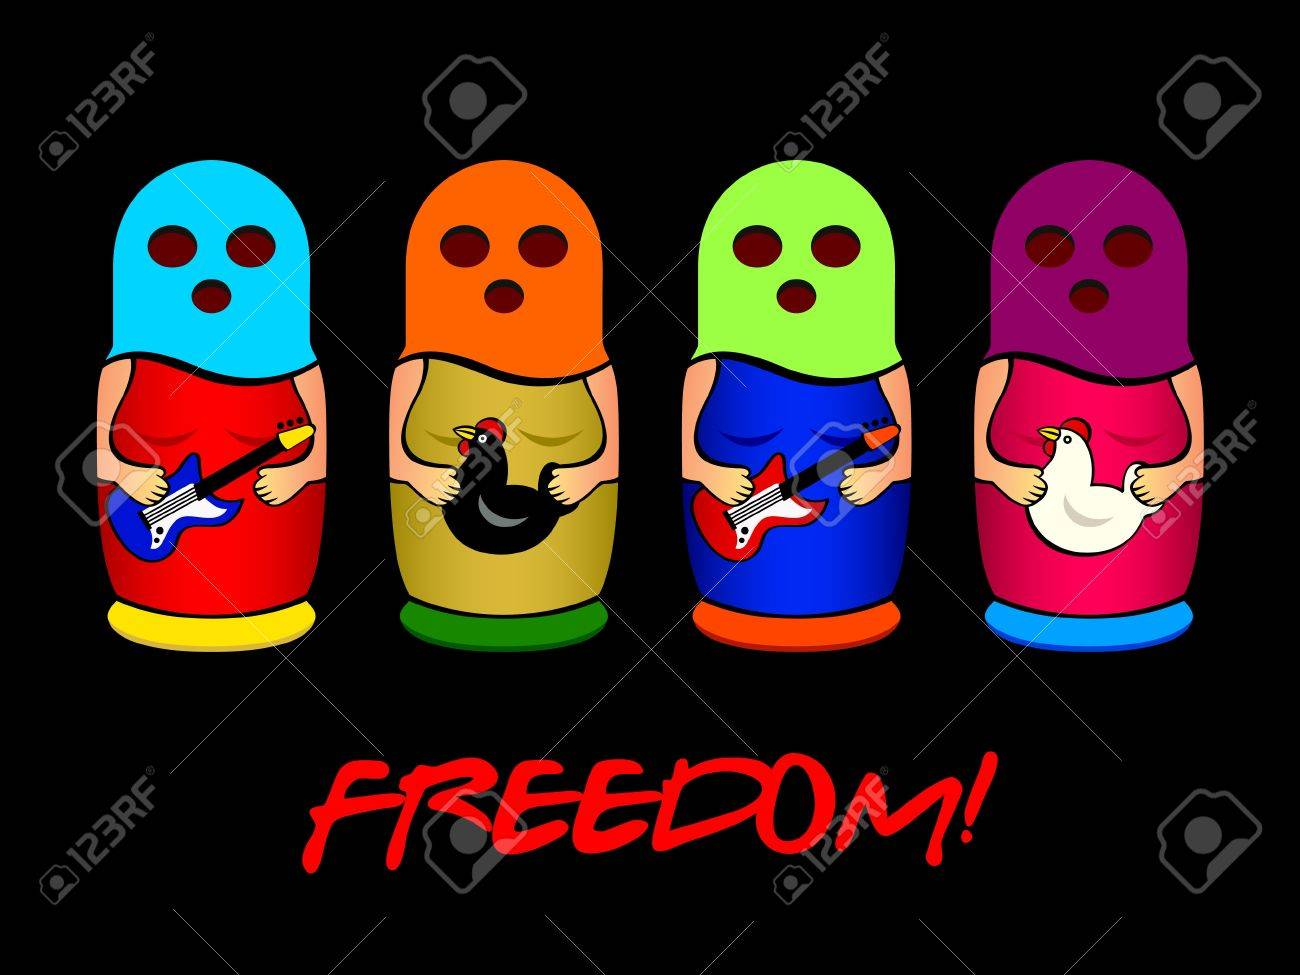 Matryoshkas band with colorful balaklava sing for freedom Stock Vector - 14927762